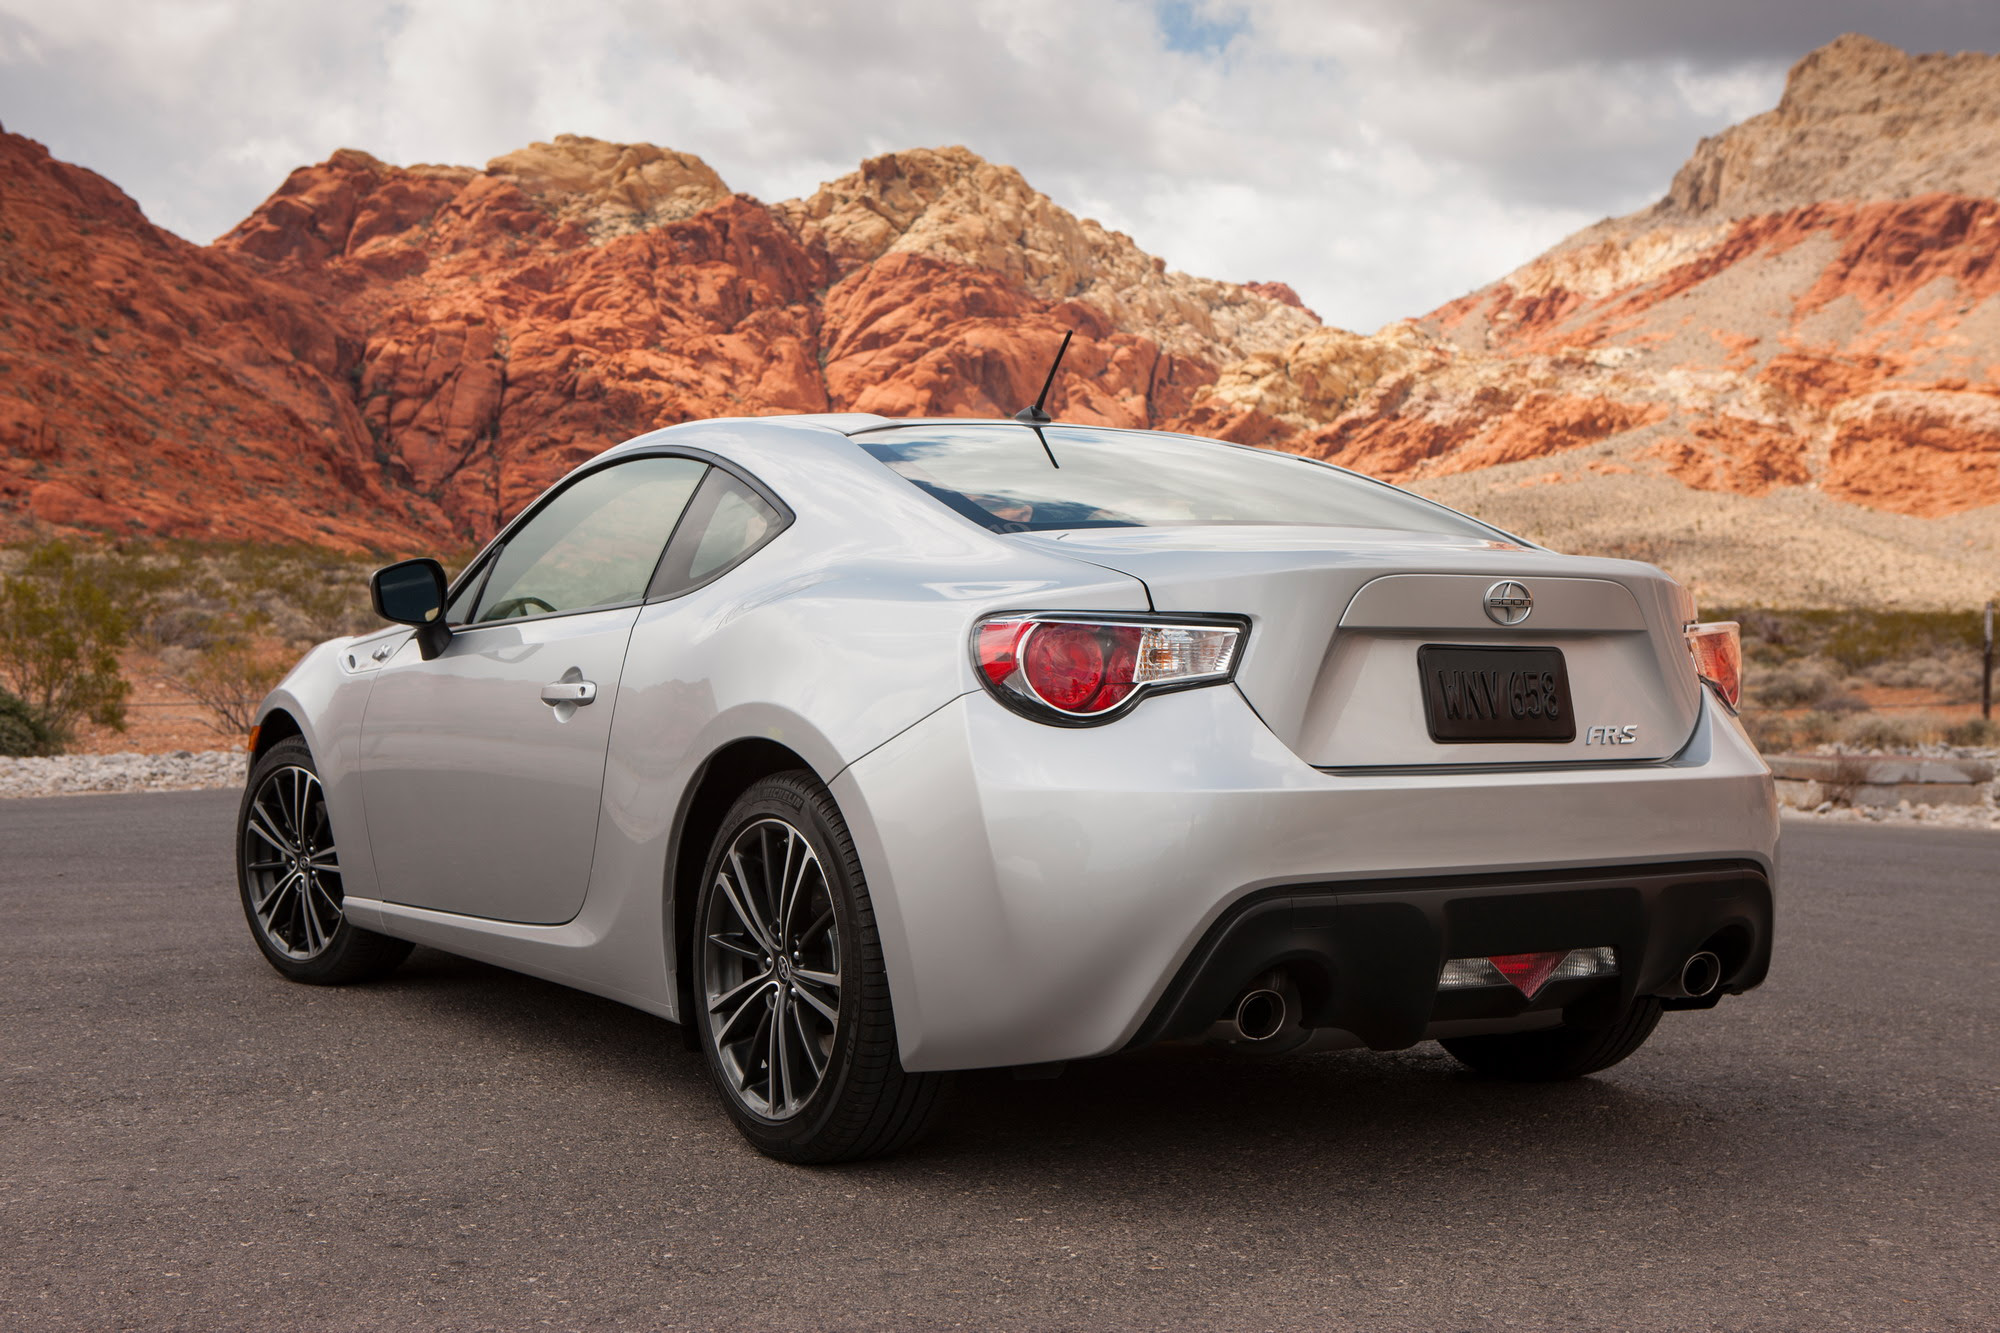 2013 - 2015 Scion FR-S Review - Top Speed